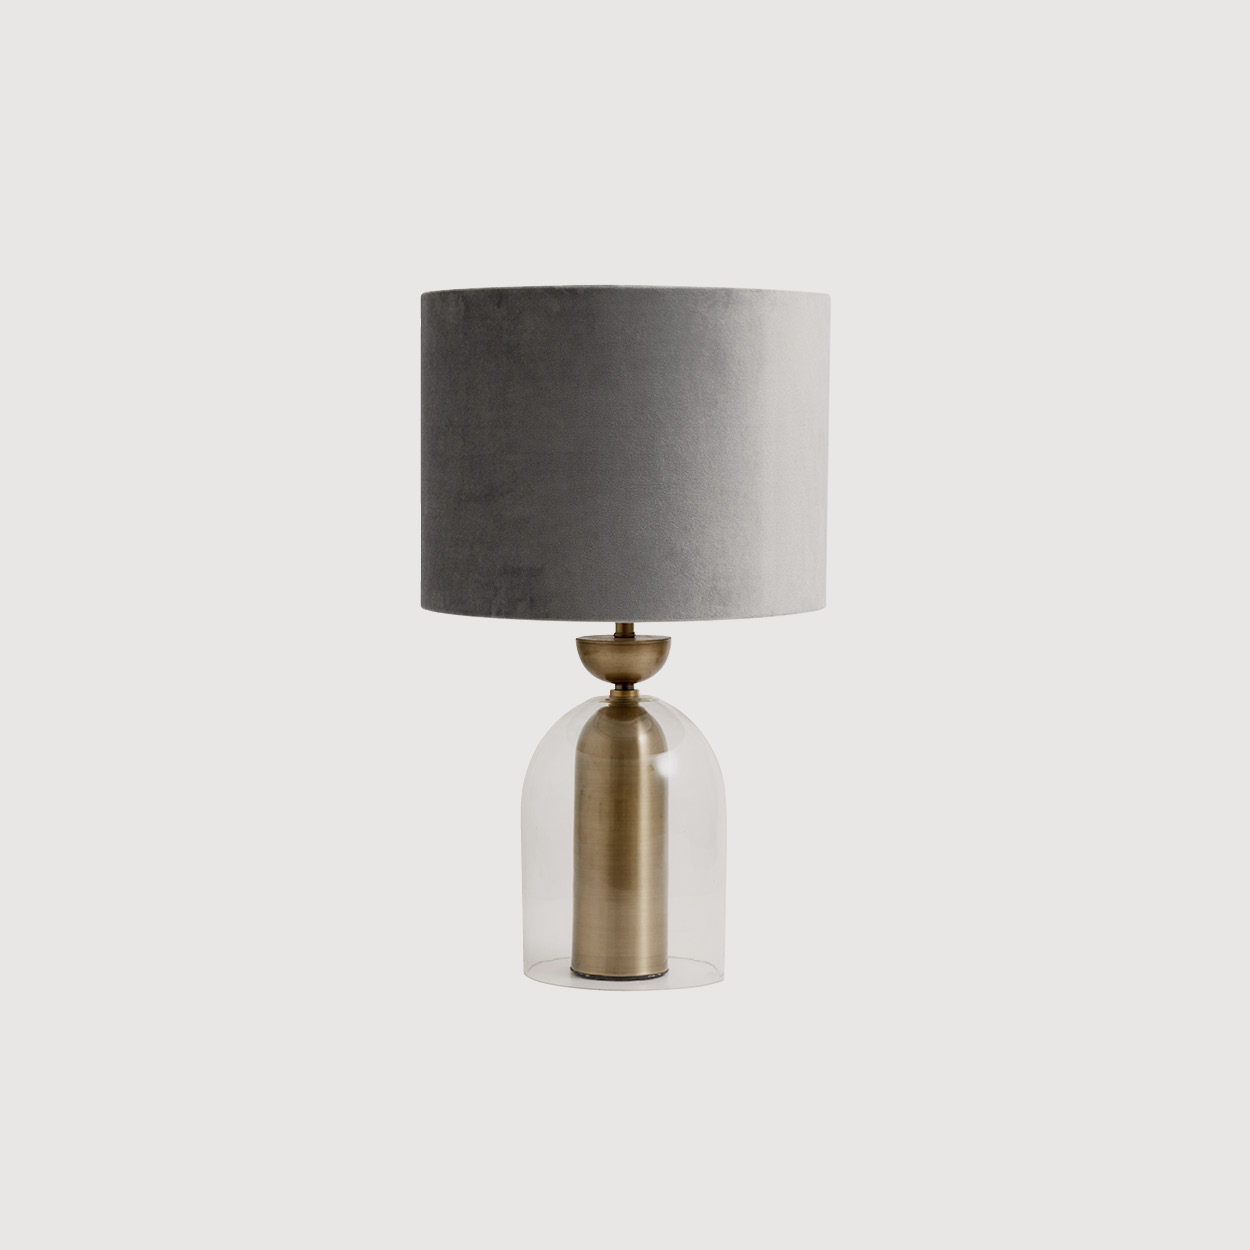 Lune Glass and Brass Lamp Base gallery image